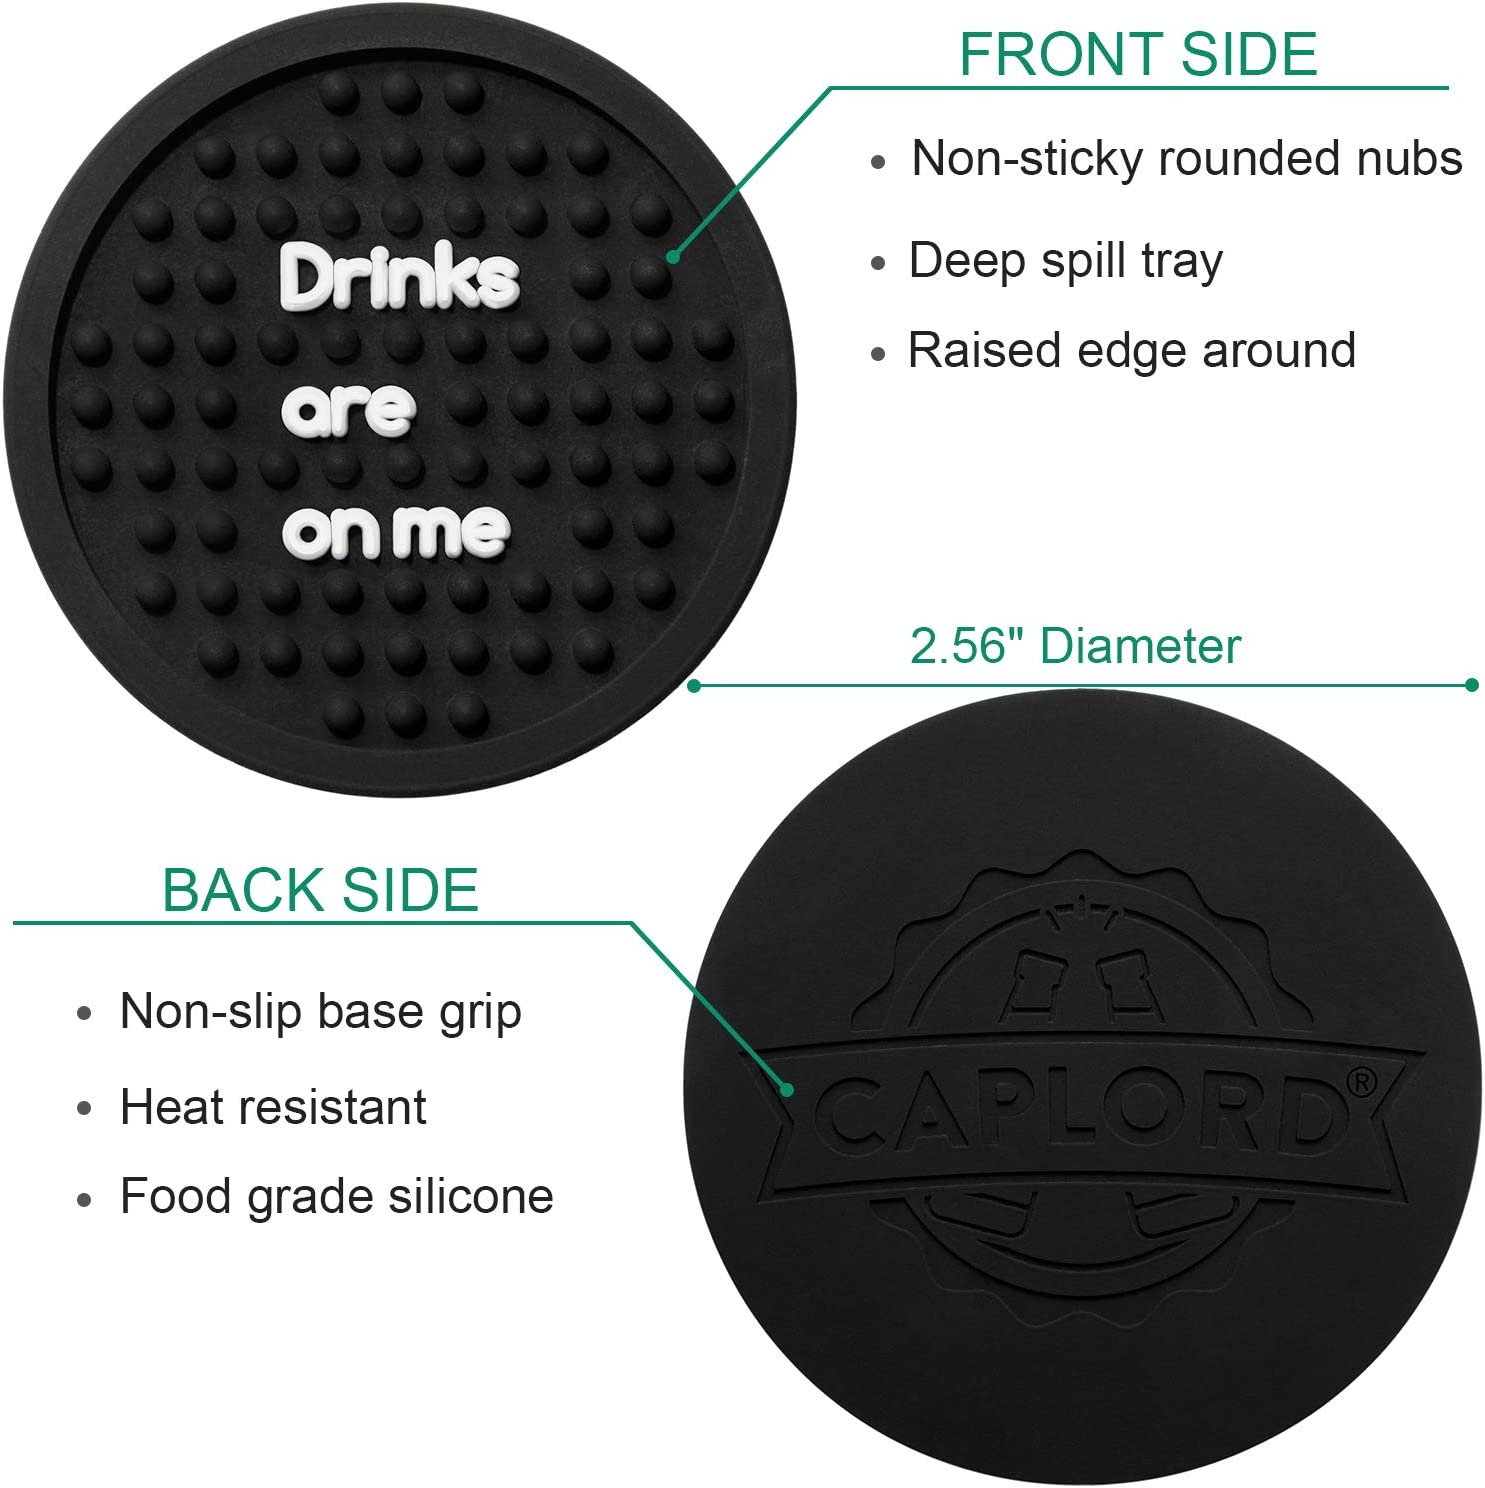 Absorbent Auto Silicone Cupholder Coaster 2.8 inch, Drinks are on me Drink Accessory to Keep Vehicle Free from Hot /& Cold Drink Sweat Stain and Spill CAPLORD Car Coasters Cup Holder